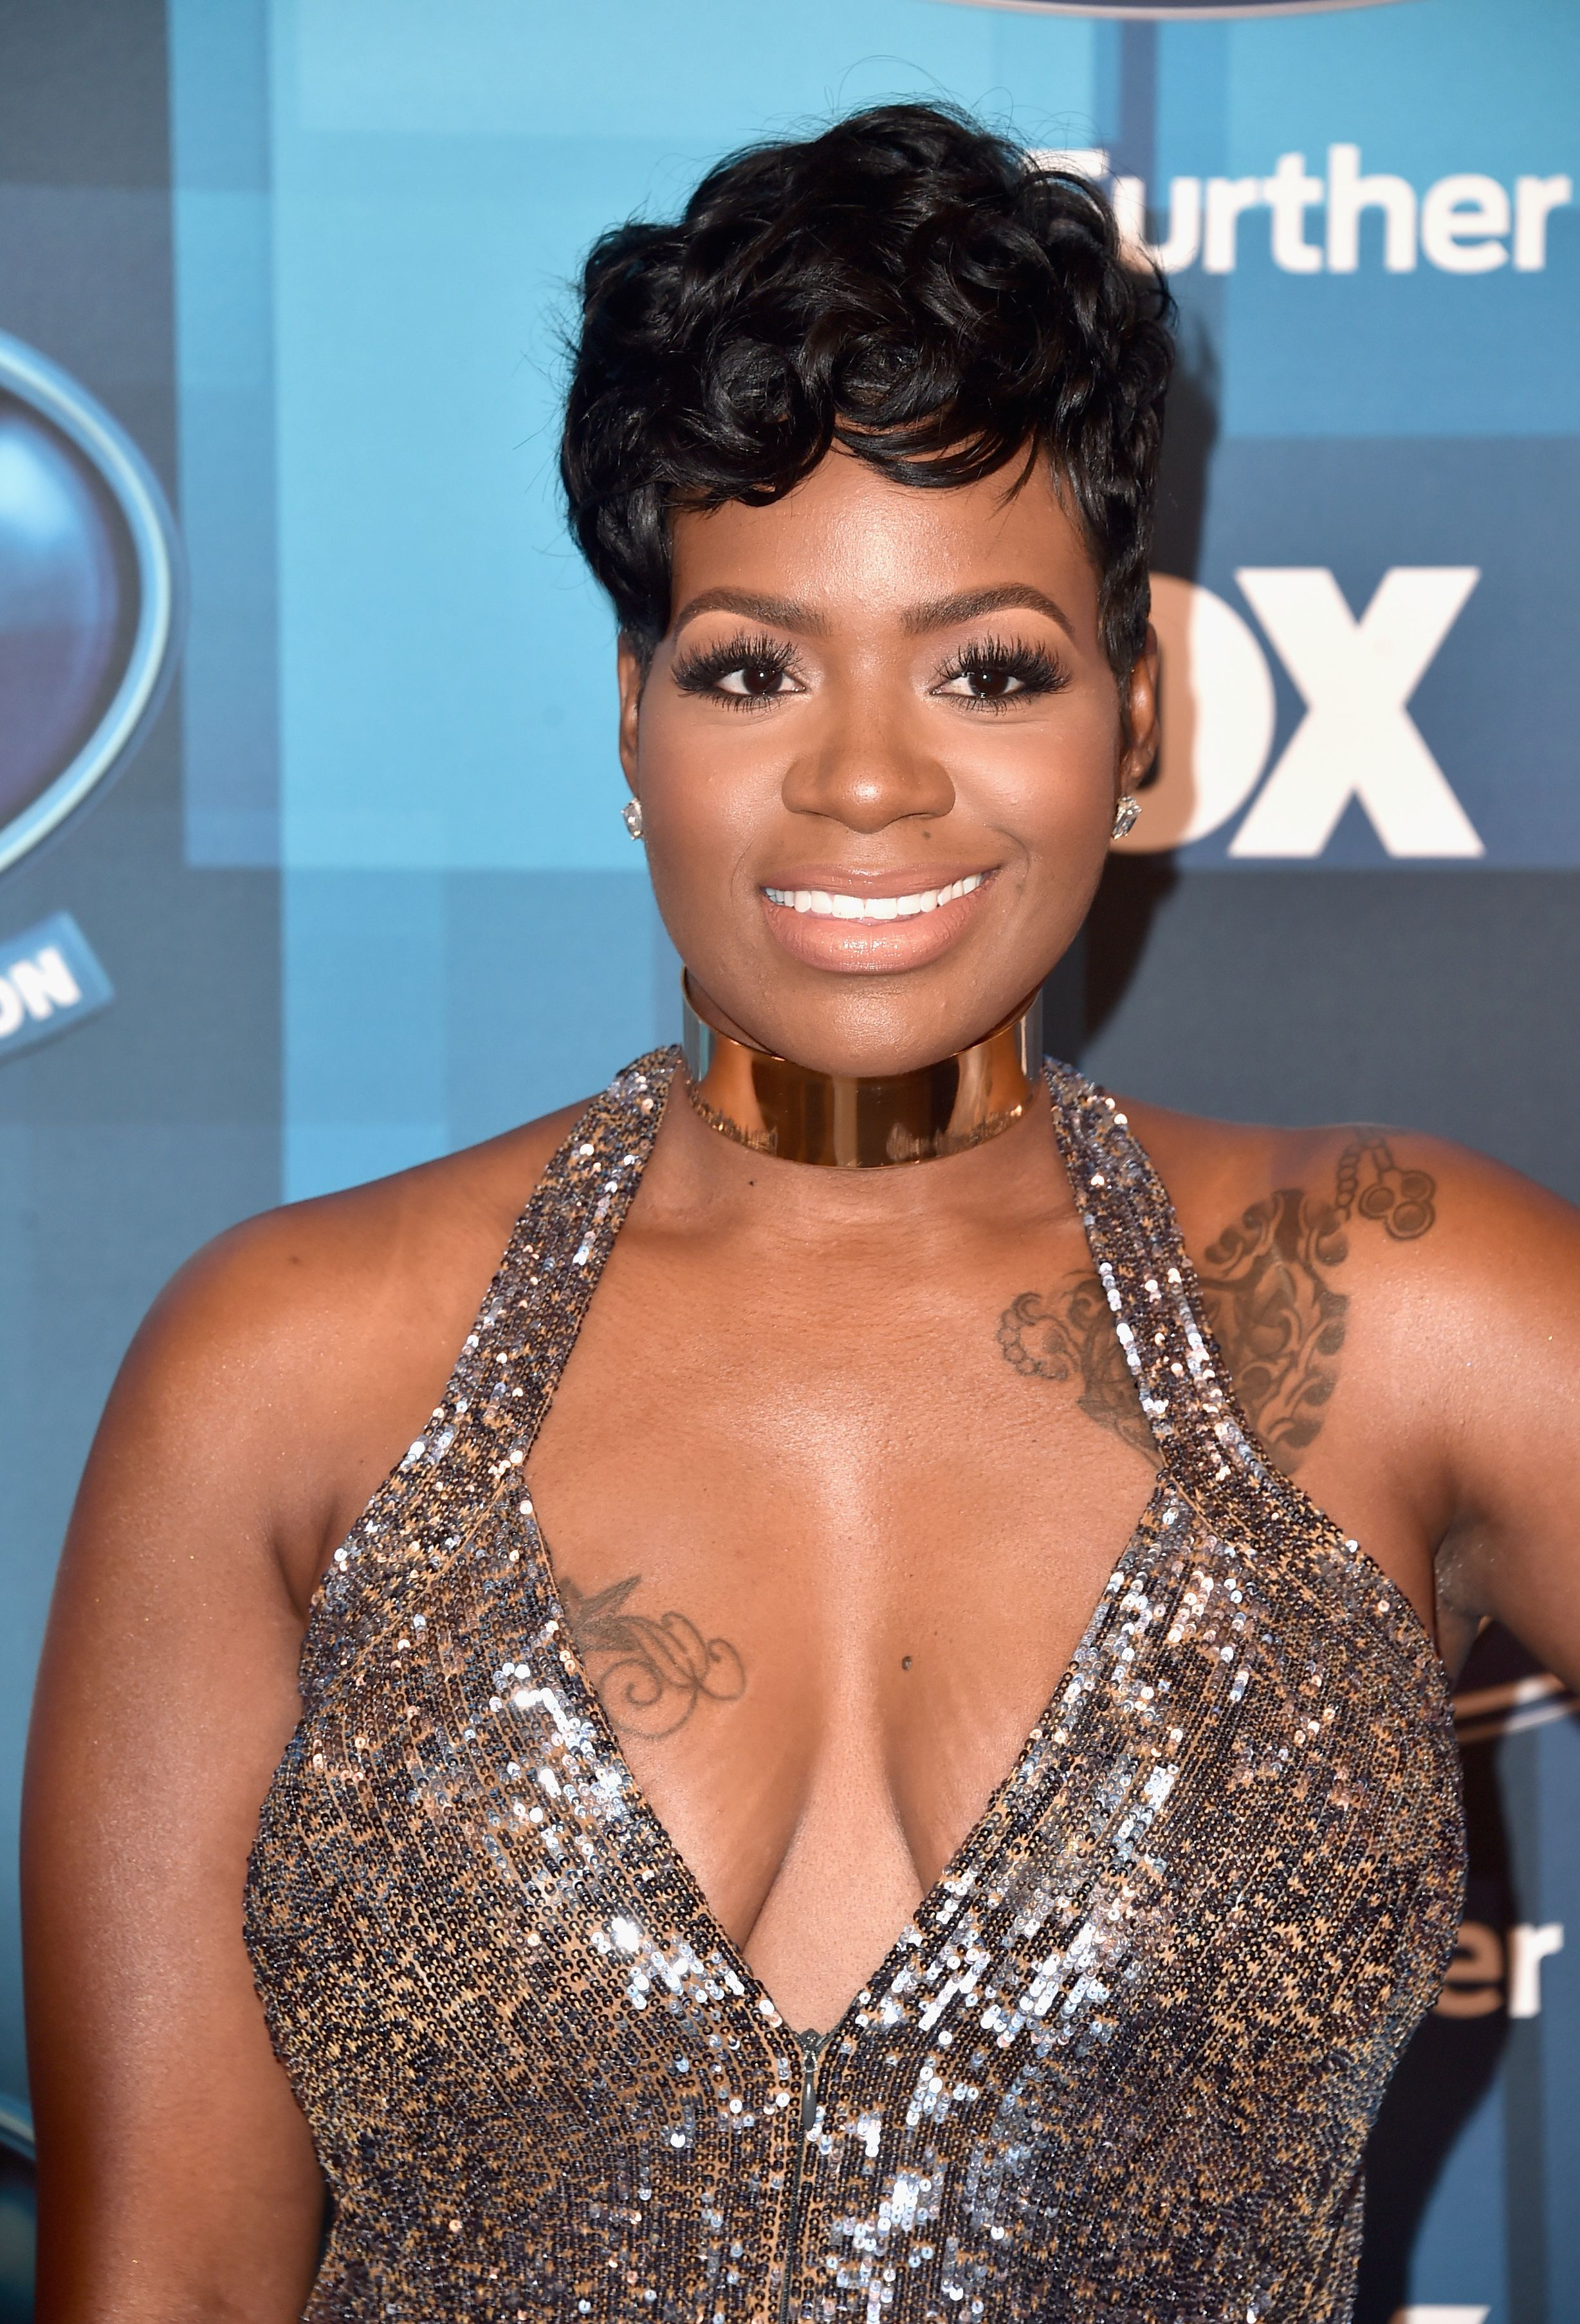 """R&B singer Fantasia Barrino attends the 2016 """"American Idol"""" Finale event at the Dolby Theatre in Hollywood, California. 